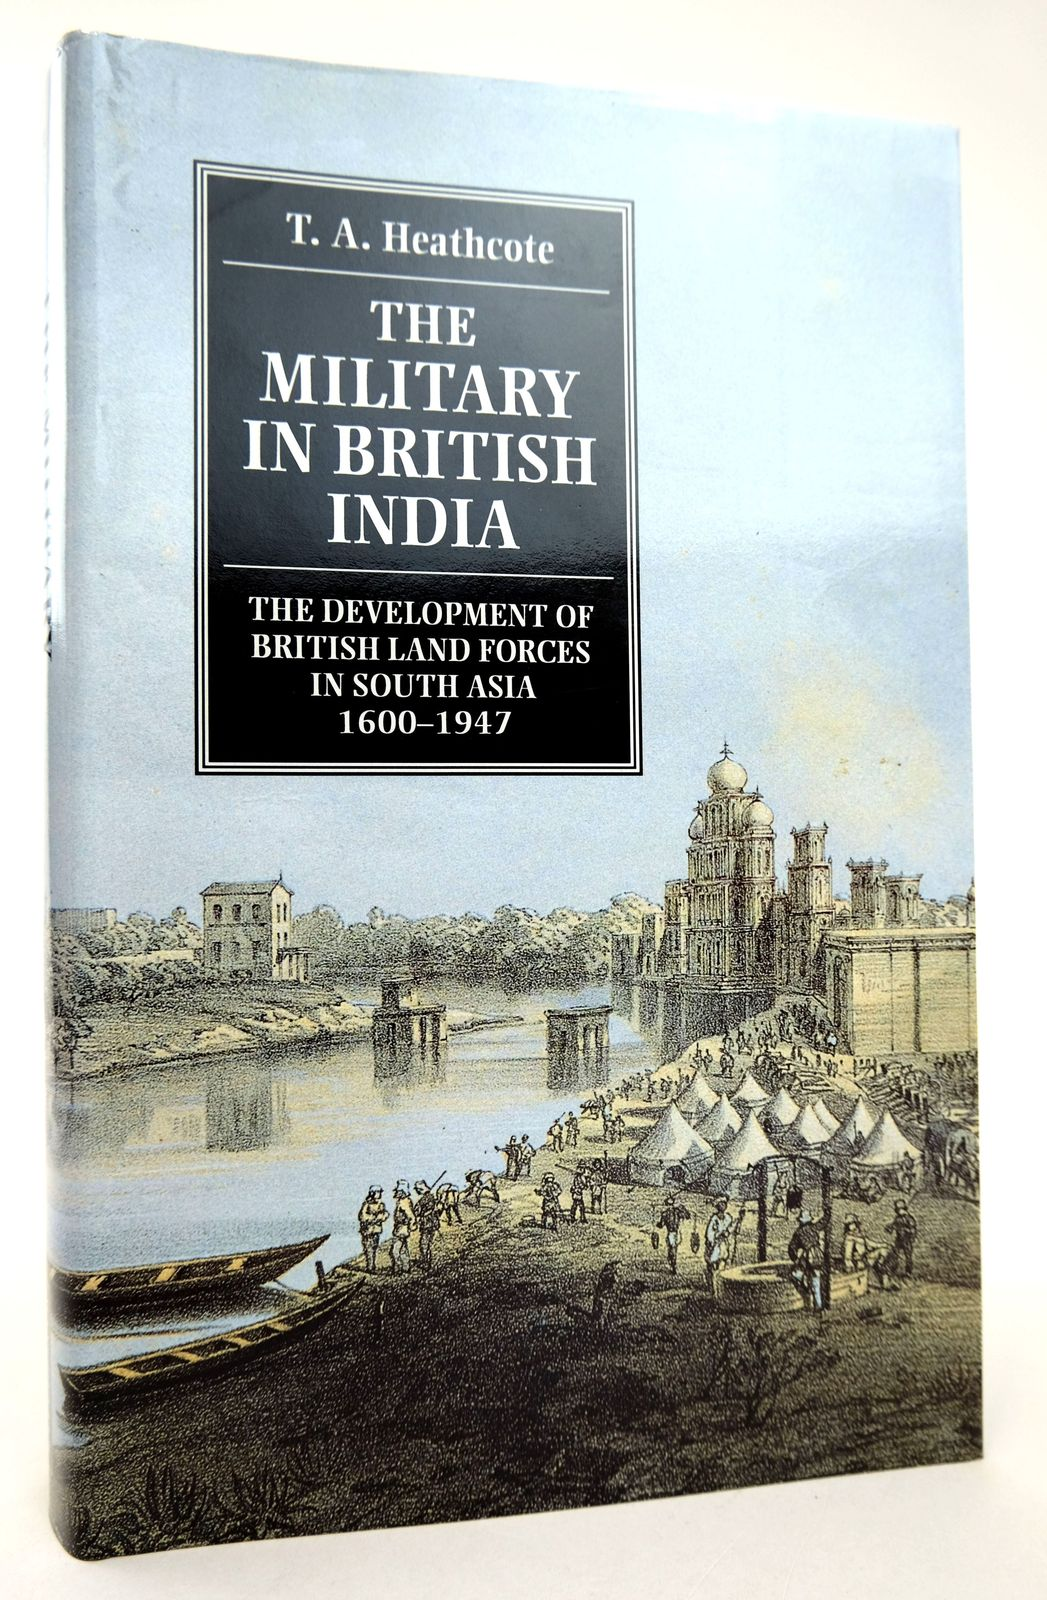 Photo of THE MILITARY IN BRITISH INDIA written by Heathcote, T.A. published by Manchester University Press (STOCK CODE: 1818766)  for sale by Stella & Rose's Books